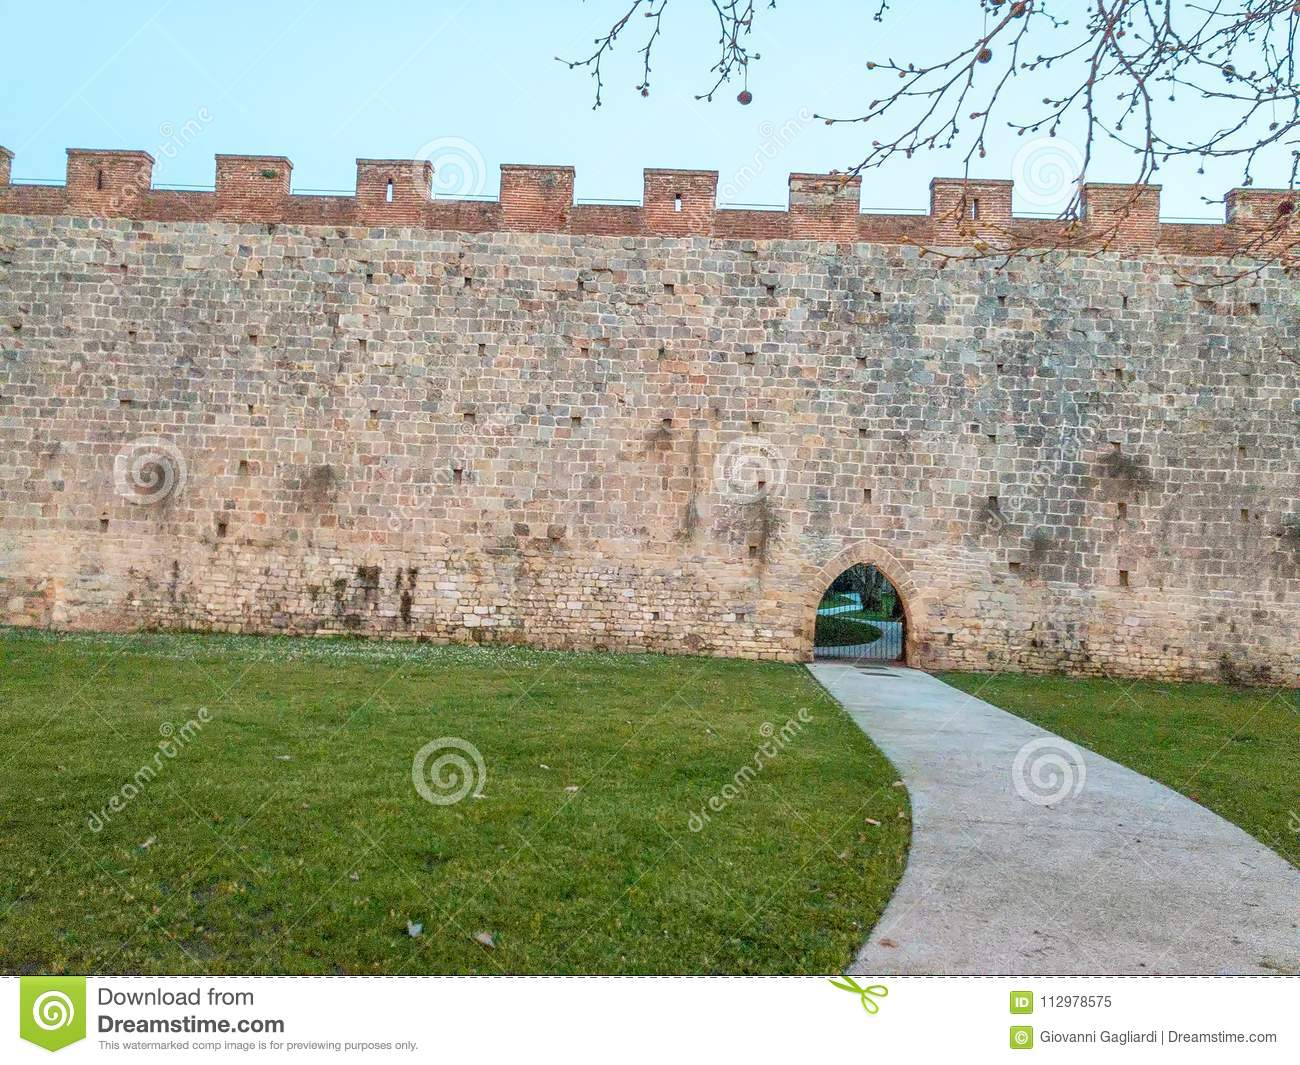 Ancient medieval walls of Pisa, Italy